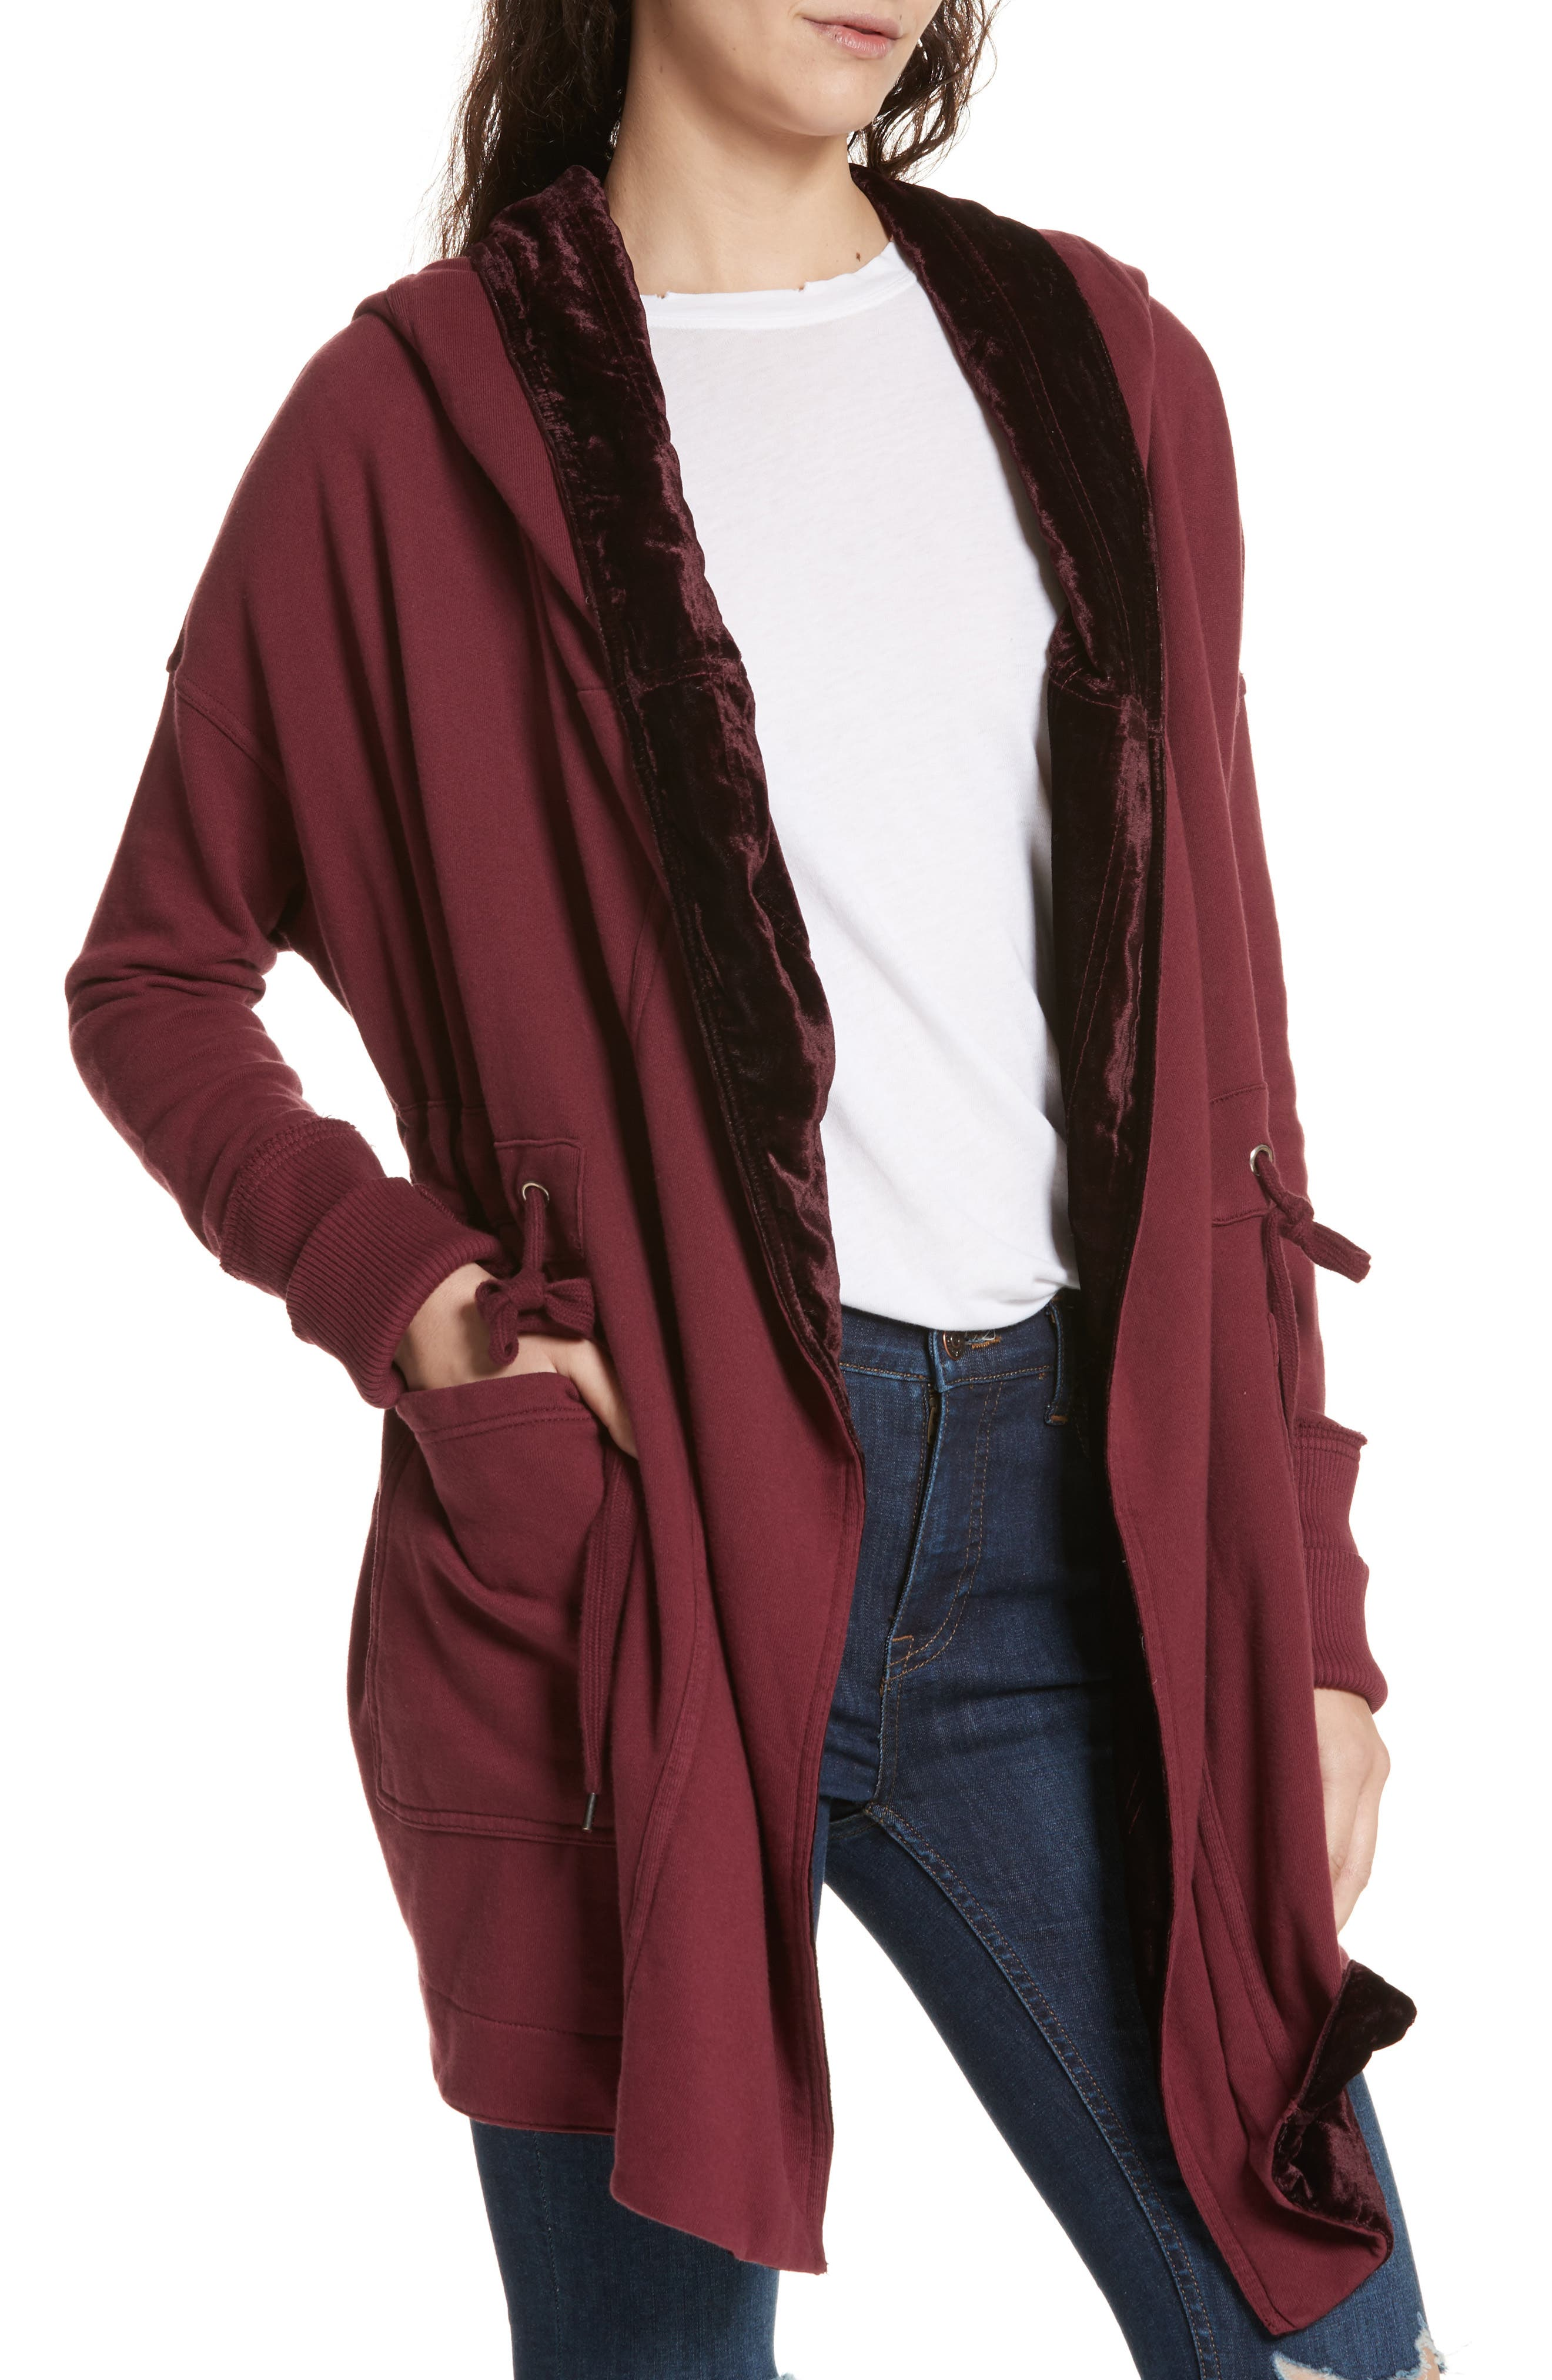 Westwood Cardigan,                             Alternate thumbnail 4, color,                             Wine